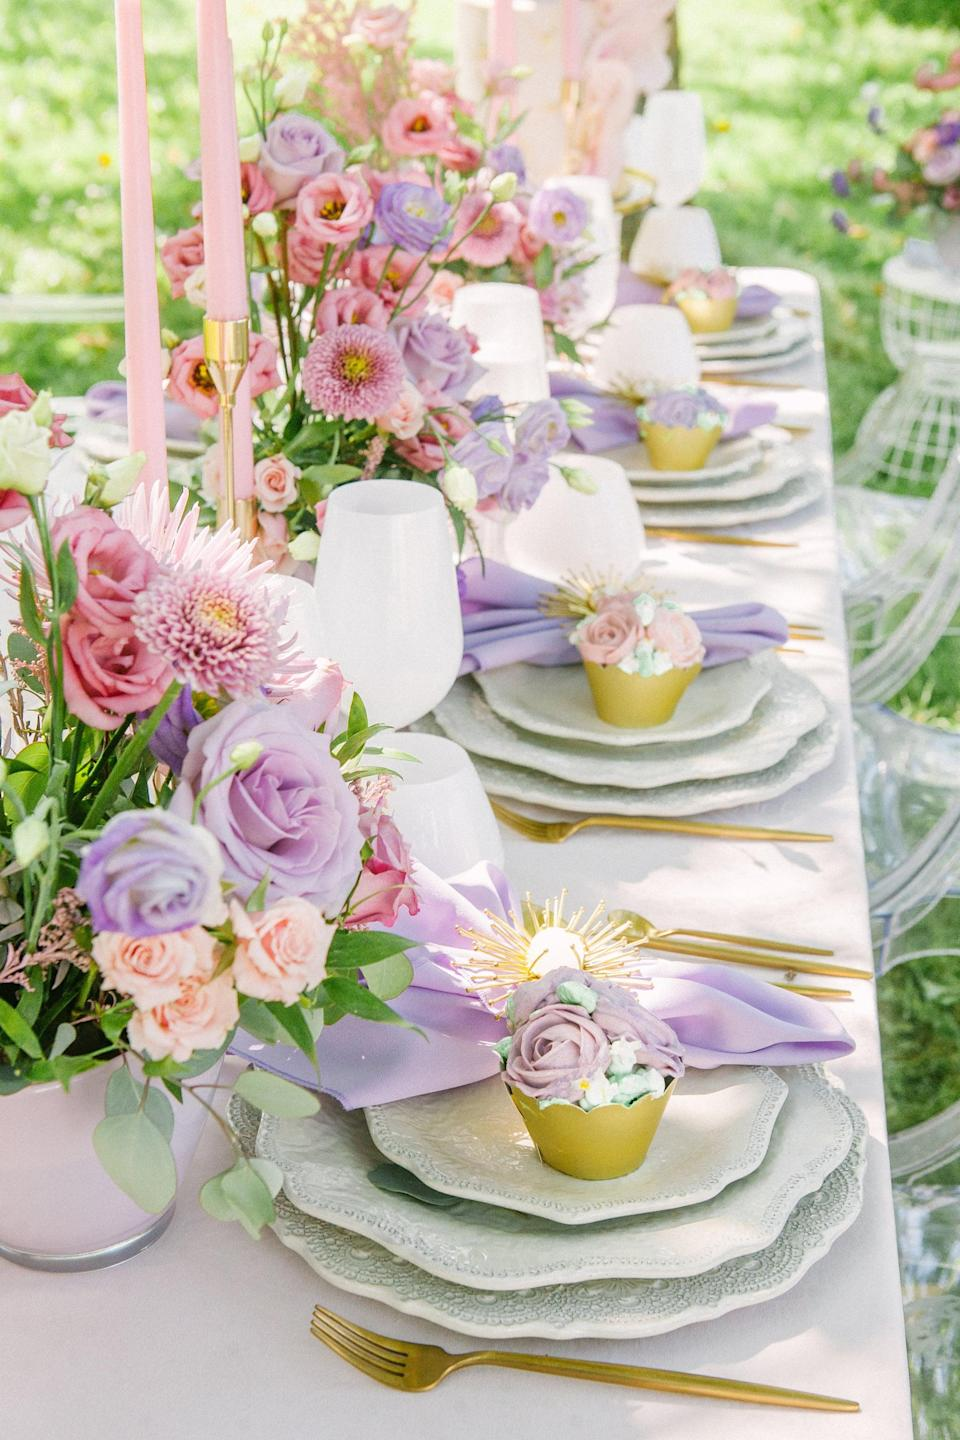 <p>Pastels are the perfect shade to use for a whimsical bridal shower. The light colors are effortlessly classy and chic, and they pair well with any event any time of the year. Pair pastel table settings with dainty flowers, and this theme will come to life in no time.</p>